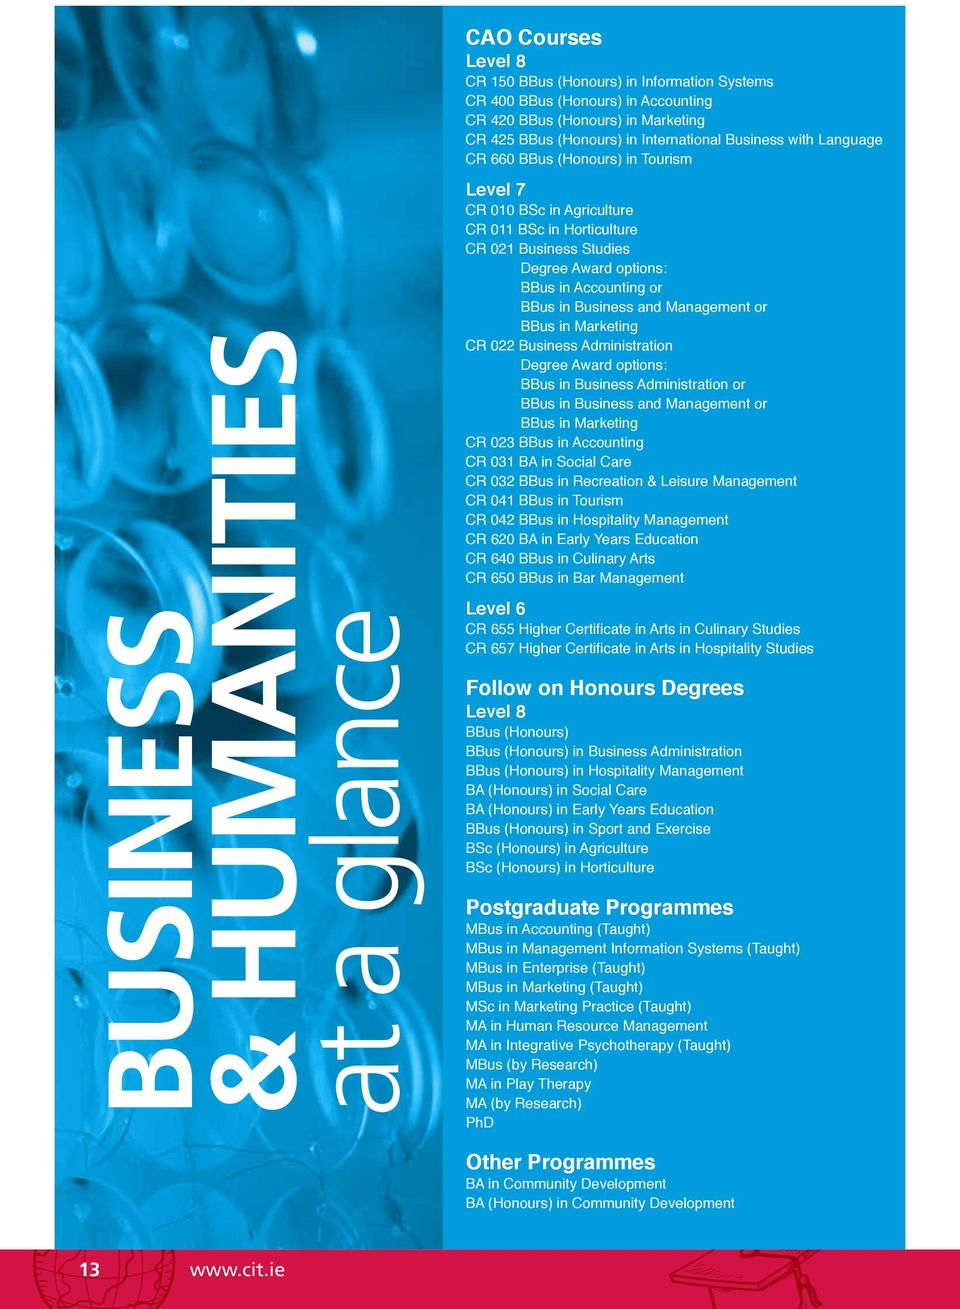 BBus in Business and Management or BBus in Marketing CR 022 Business Administration Degree Award options: BBus in Business Administration or BBus in Business and Management or BBus in Marketing CR